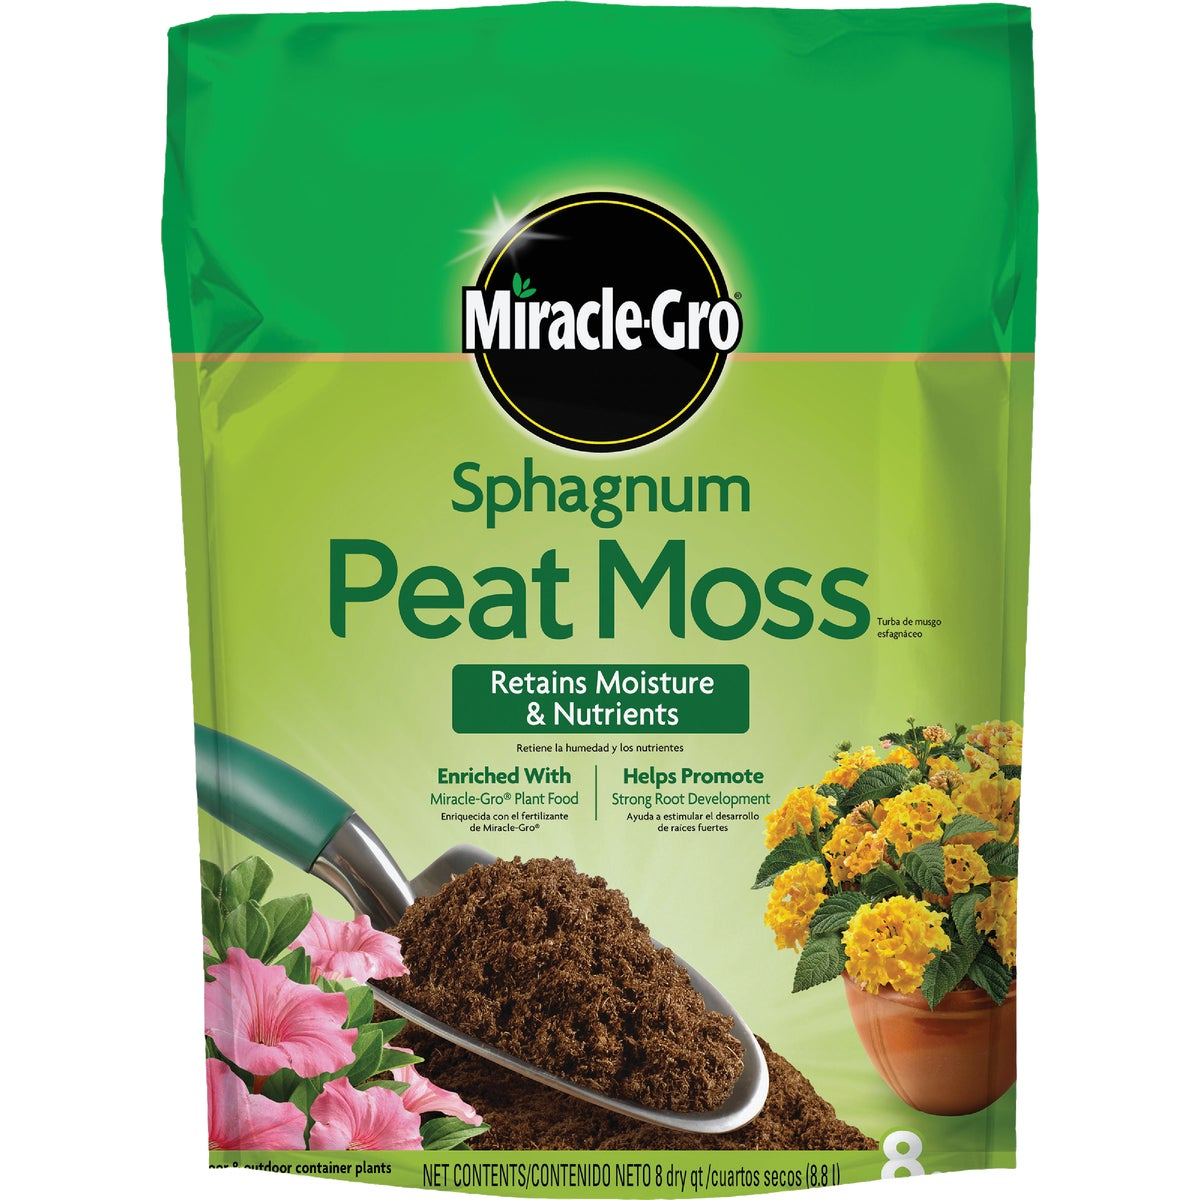 8QT PEAT MOSS - 85278430 by Scotts Organics